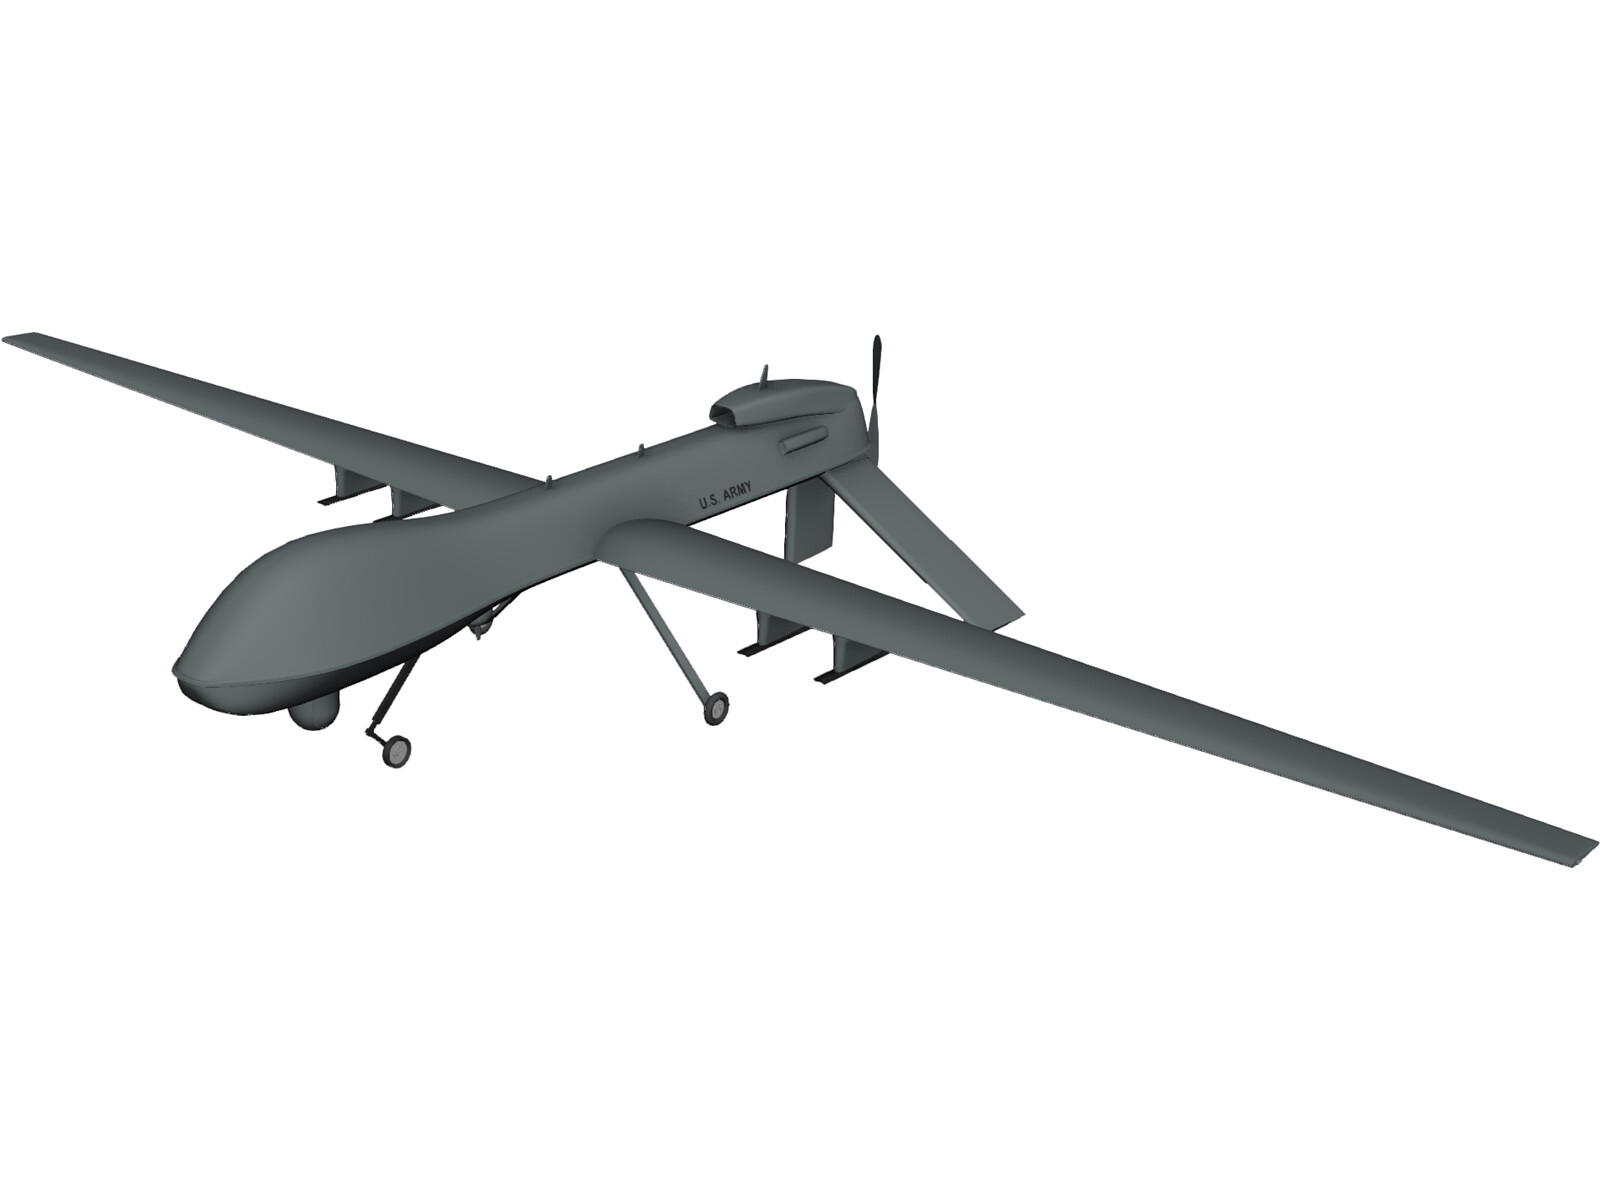 drone missiles with Download on Download in addition As Us Modernizes Nuclear Weapons Smaller Leaves Some Uneasy in addition The Uprising MASS PRODUCTION JAEGER 738048228 together with Drones Vs Human Intel together with 2013 12 01 archive.